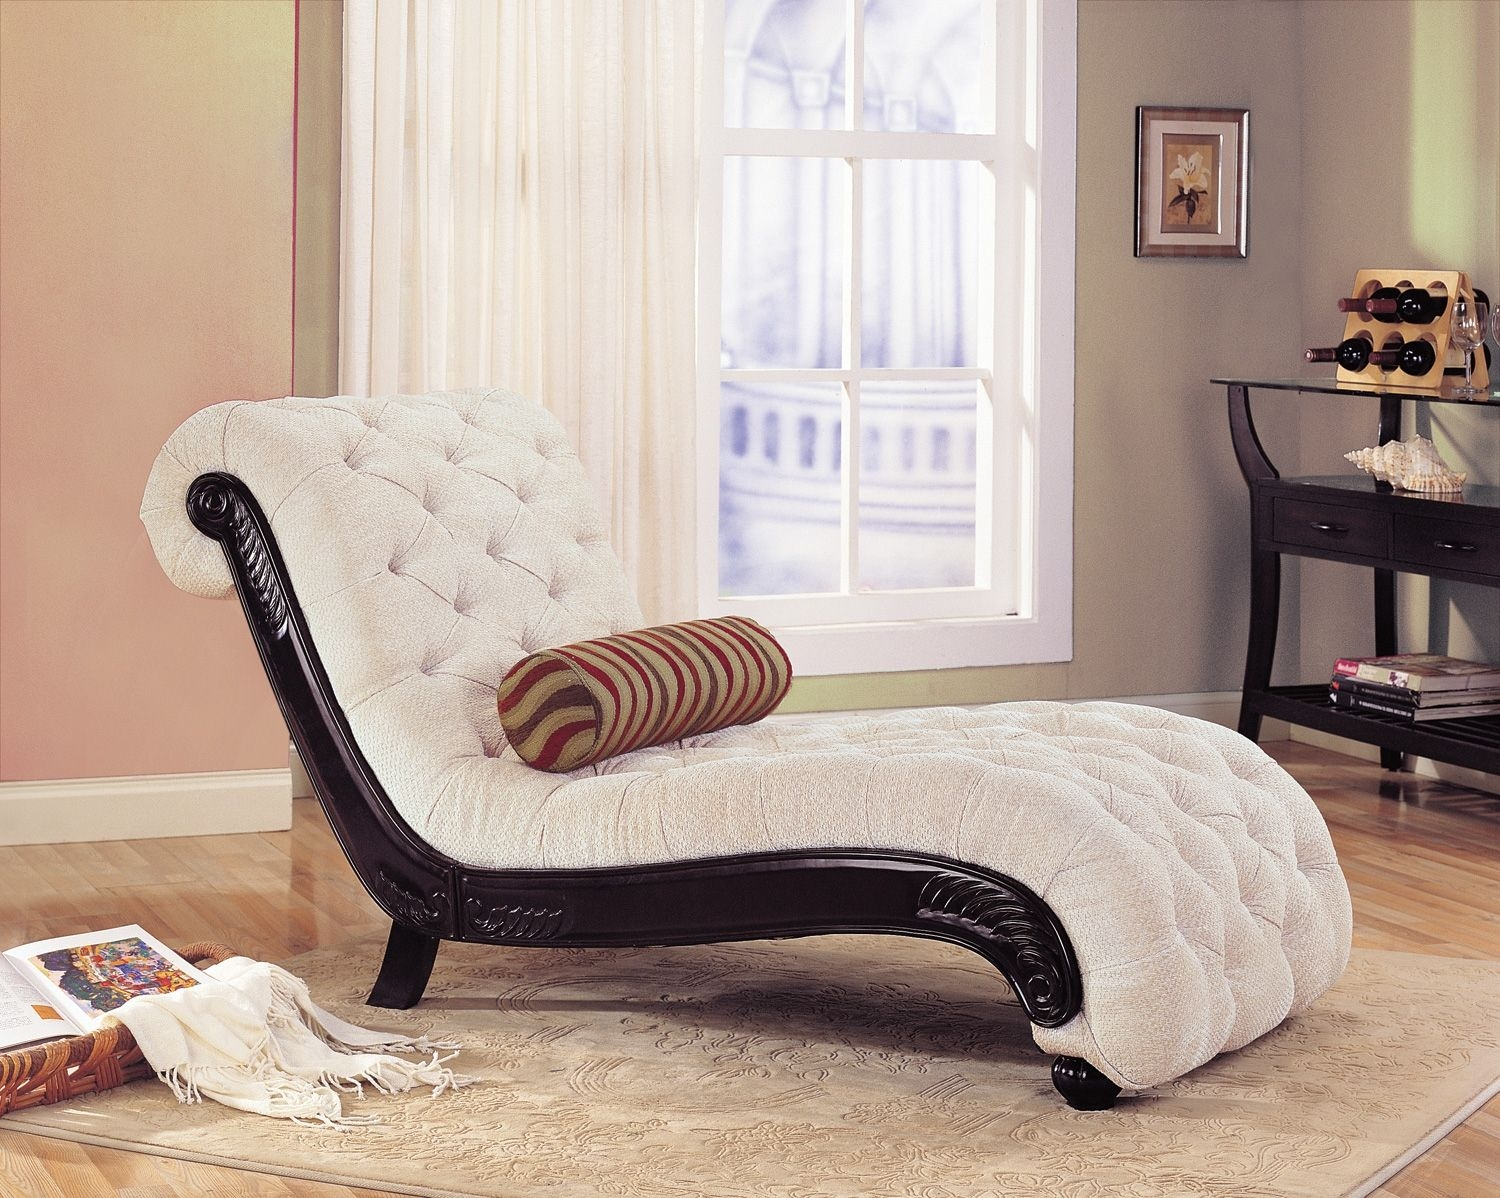 lounge chairs for bedroom visual hunt rh visualhunt com white lounge chair for bedroom modern lounge chair for bedroom